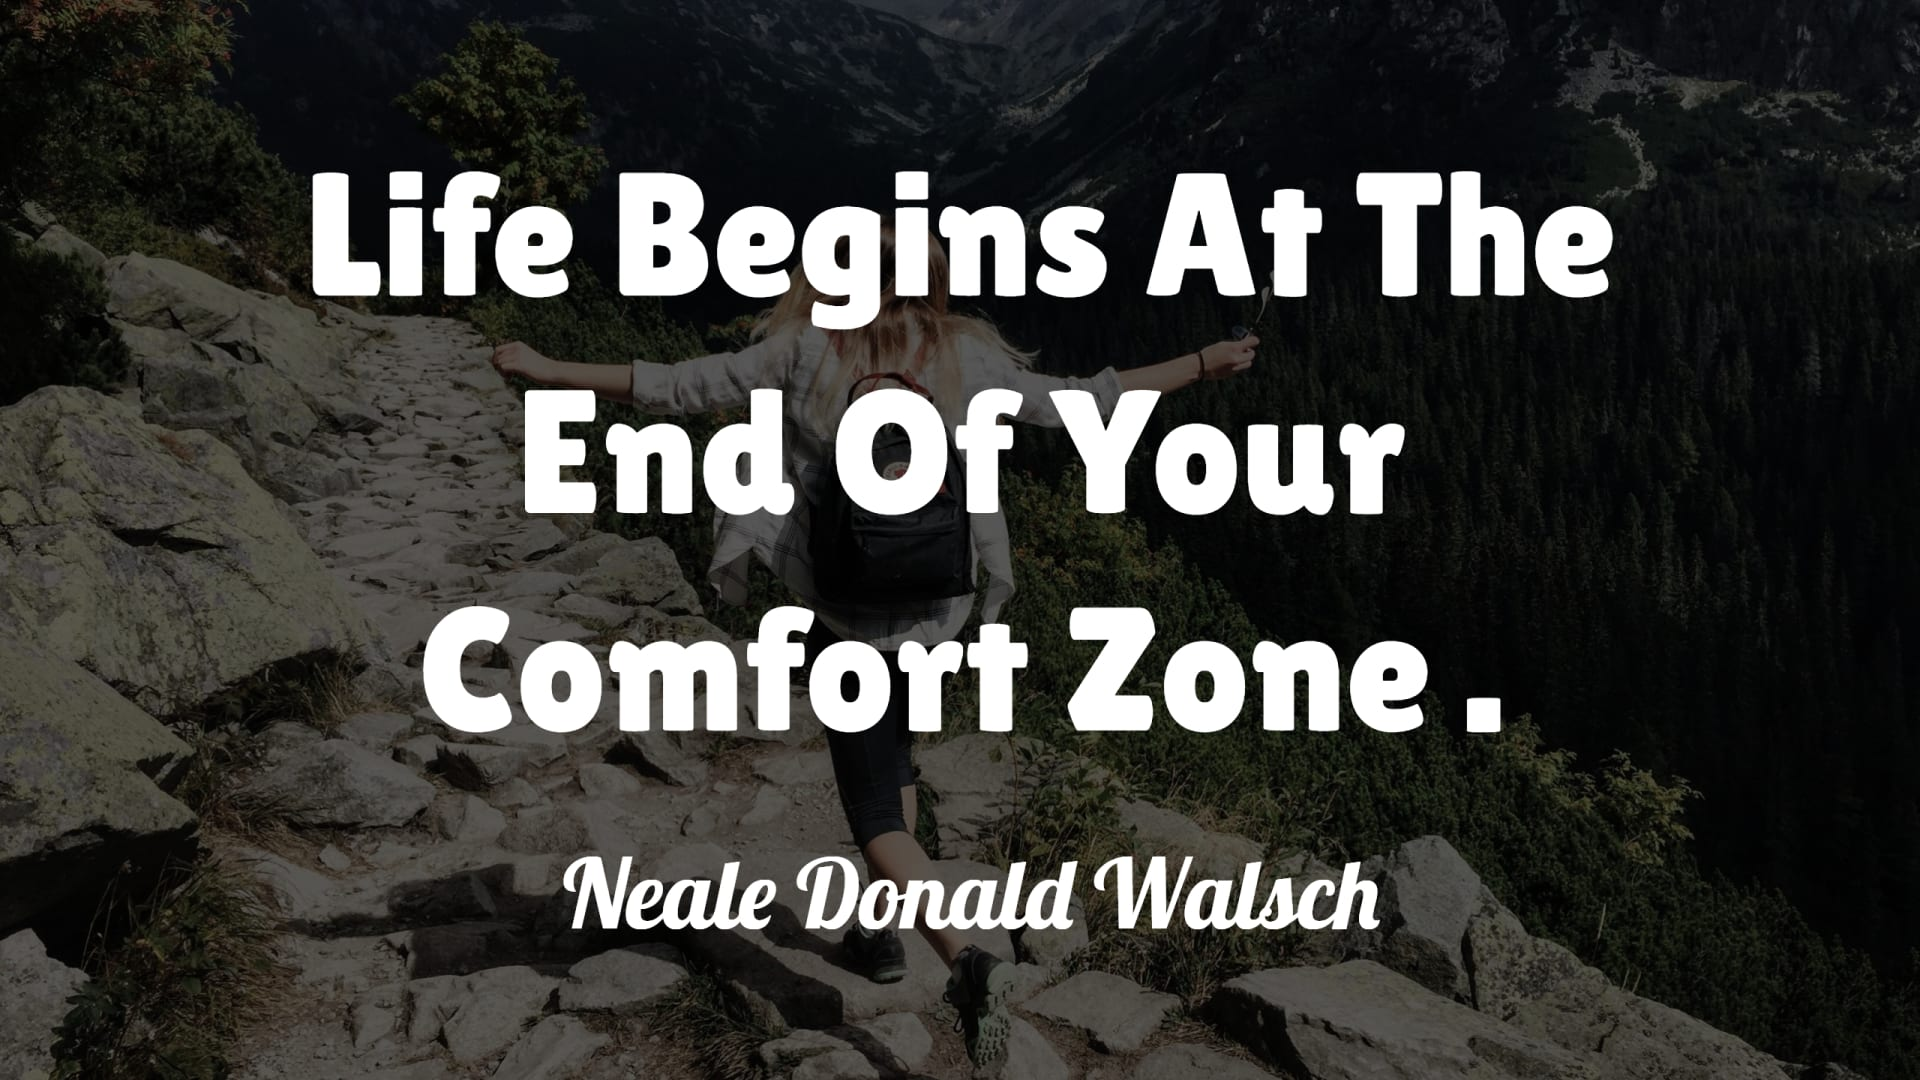 Life Begins At The End Of Your Comfort Zone - Neale Donald Walsch (With Similar Quotes)